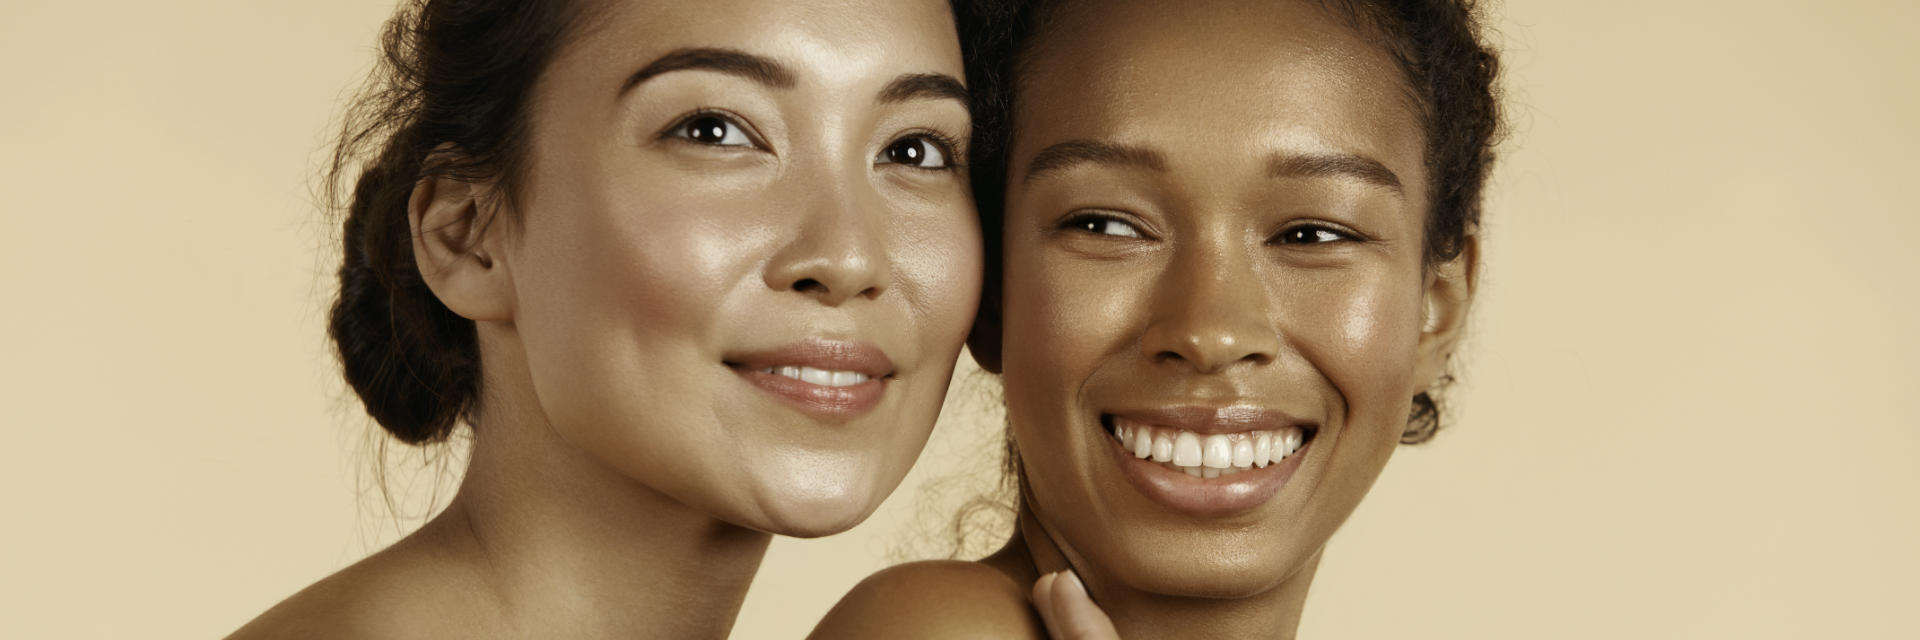 two happy women with perfect skin after facial chemical peel treatment